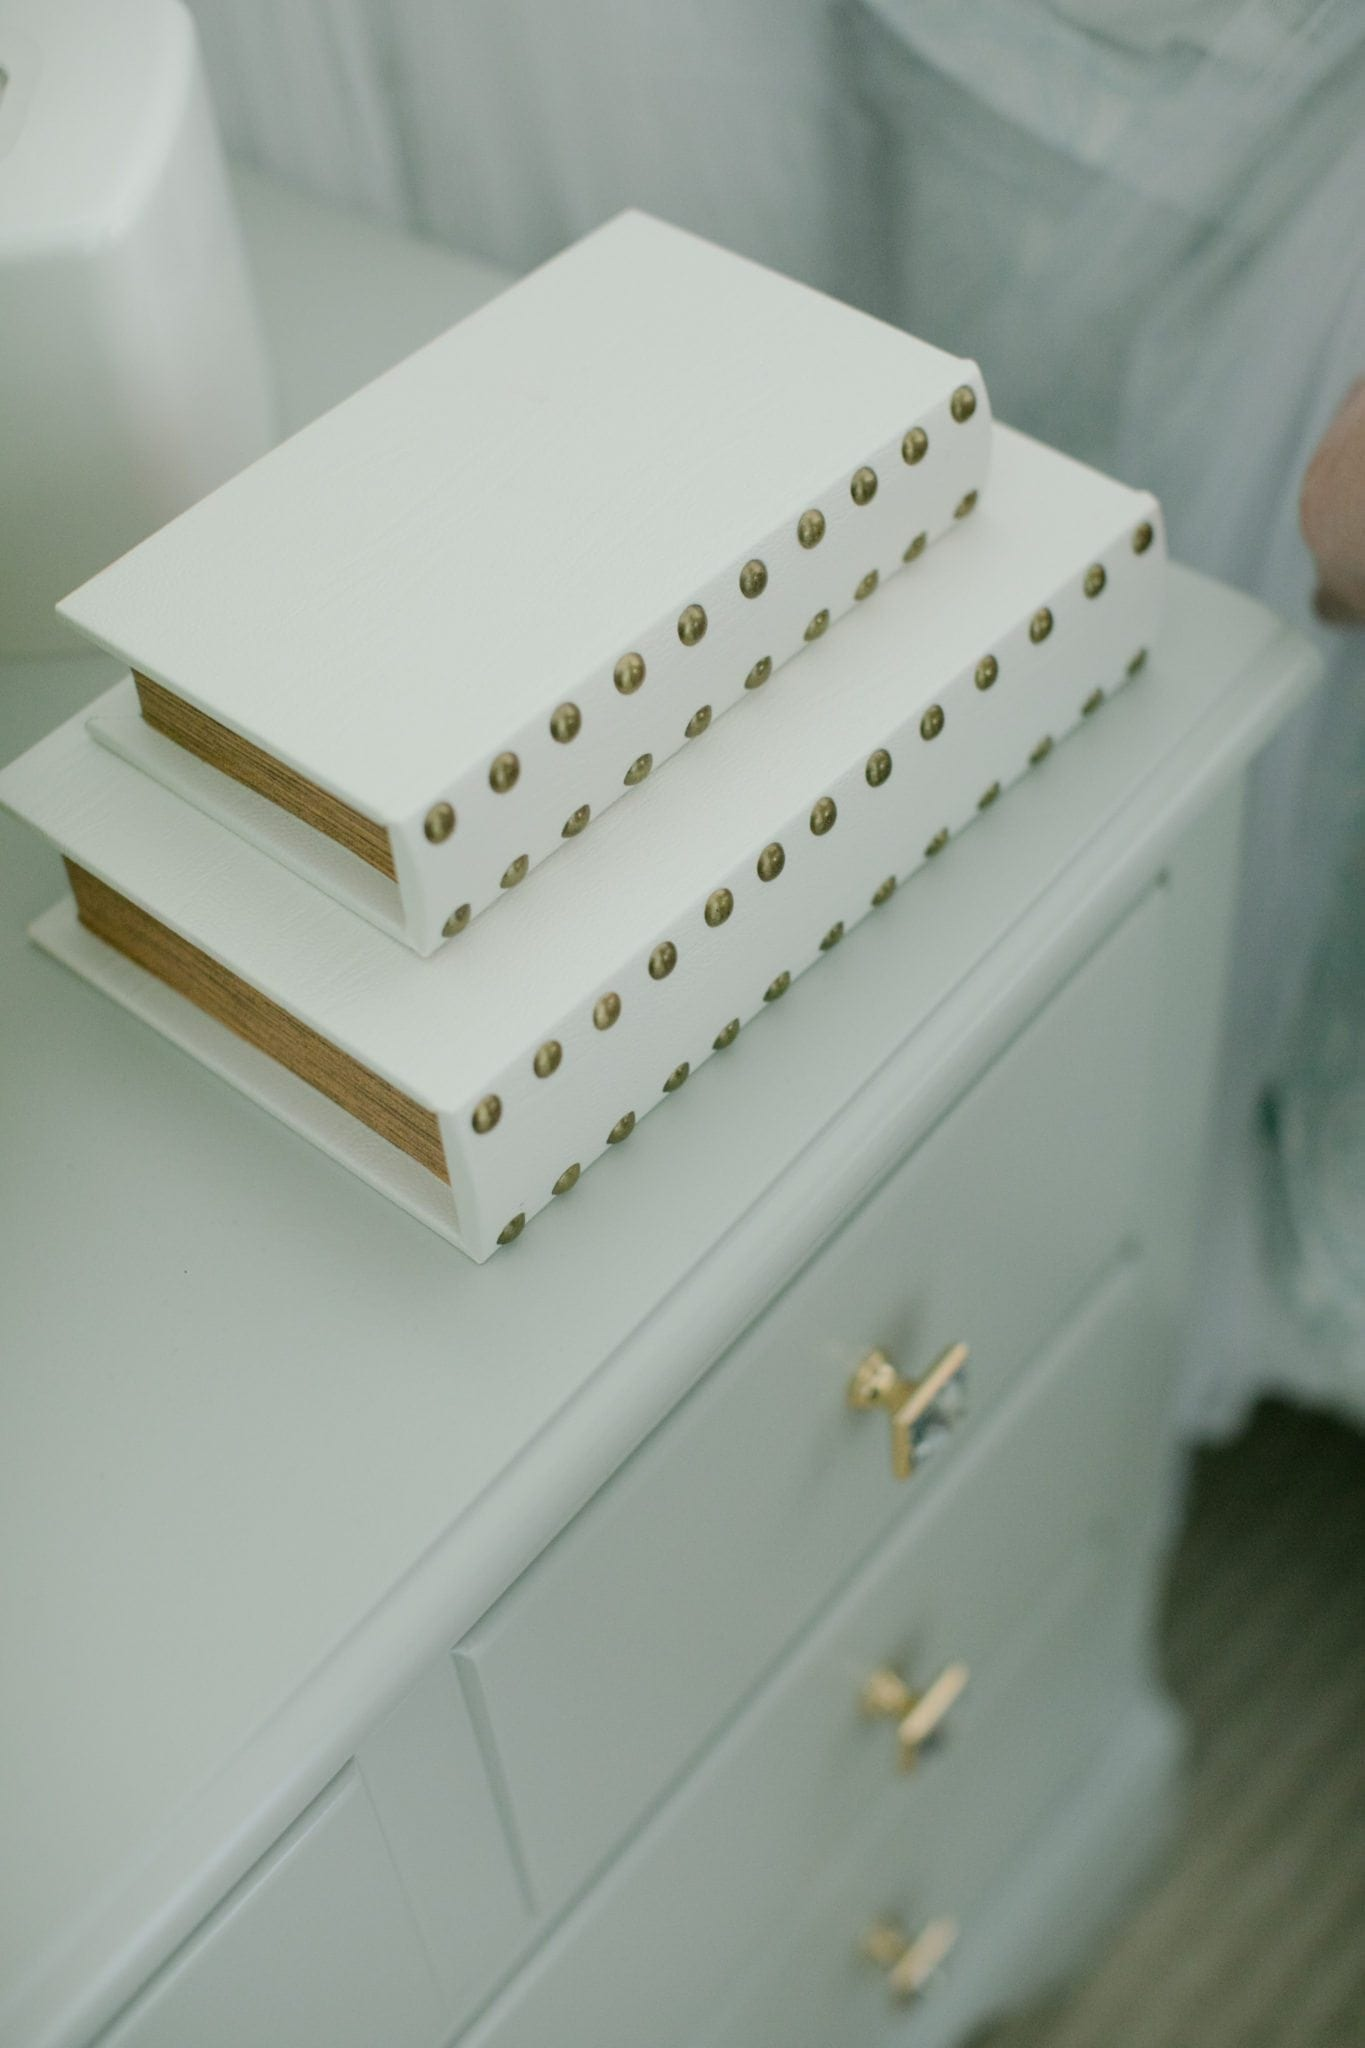 Decorative books with lids for hiding stuff on nightstand.